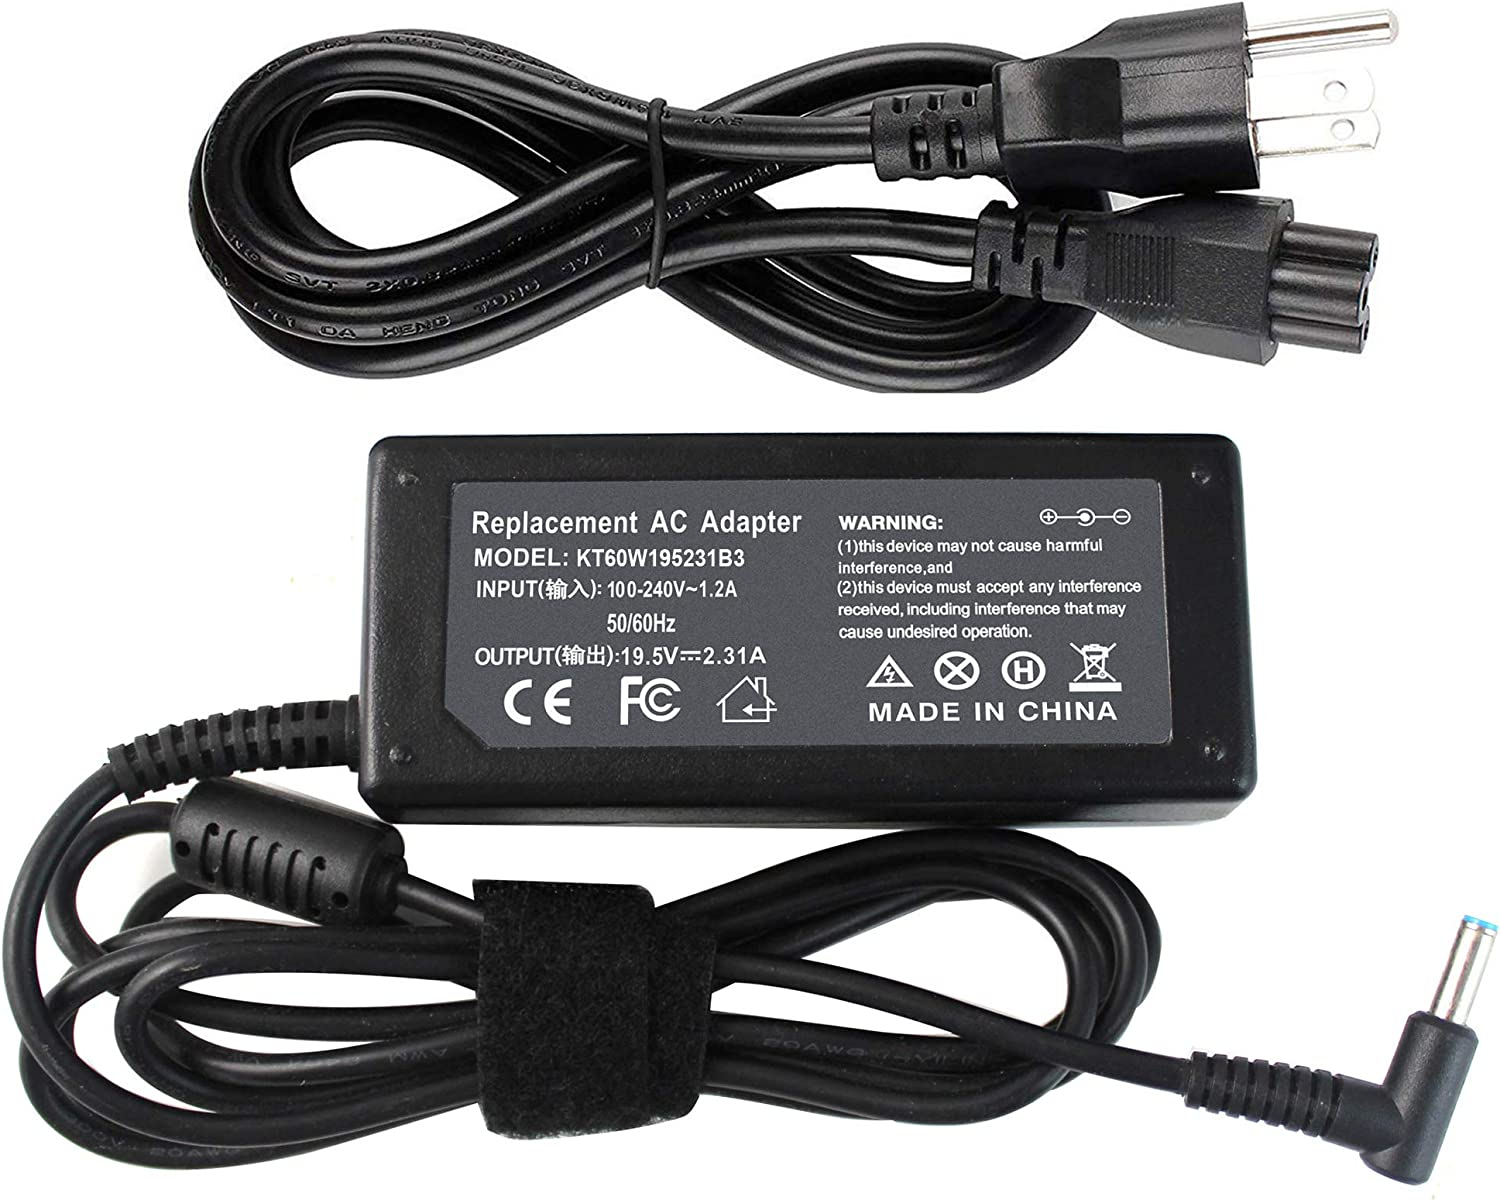 Shareway 45W Replacment Laptop Charger for HP Envy 15-u010dx ADP-45WD B HSTNN-CA40 741727-001 740015-001 740015-002 740015-003 719309-001 F9H92UA [4.5mm3.0mm]